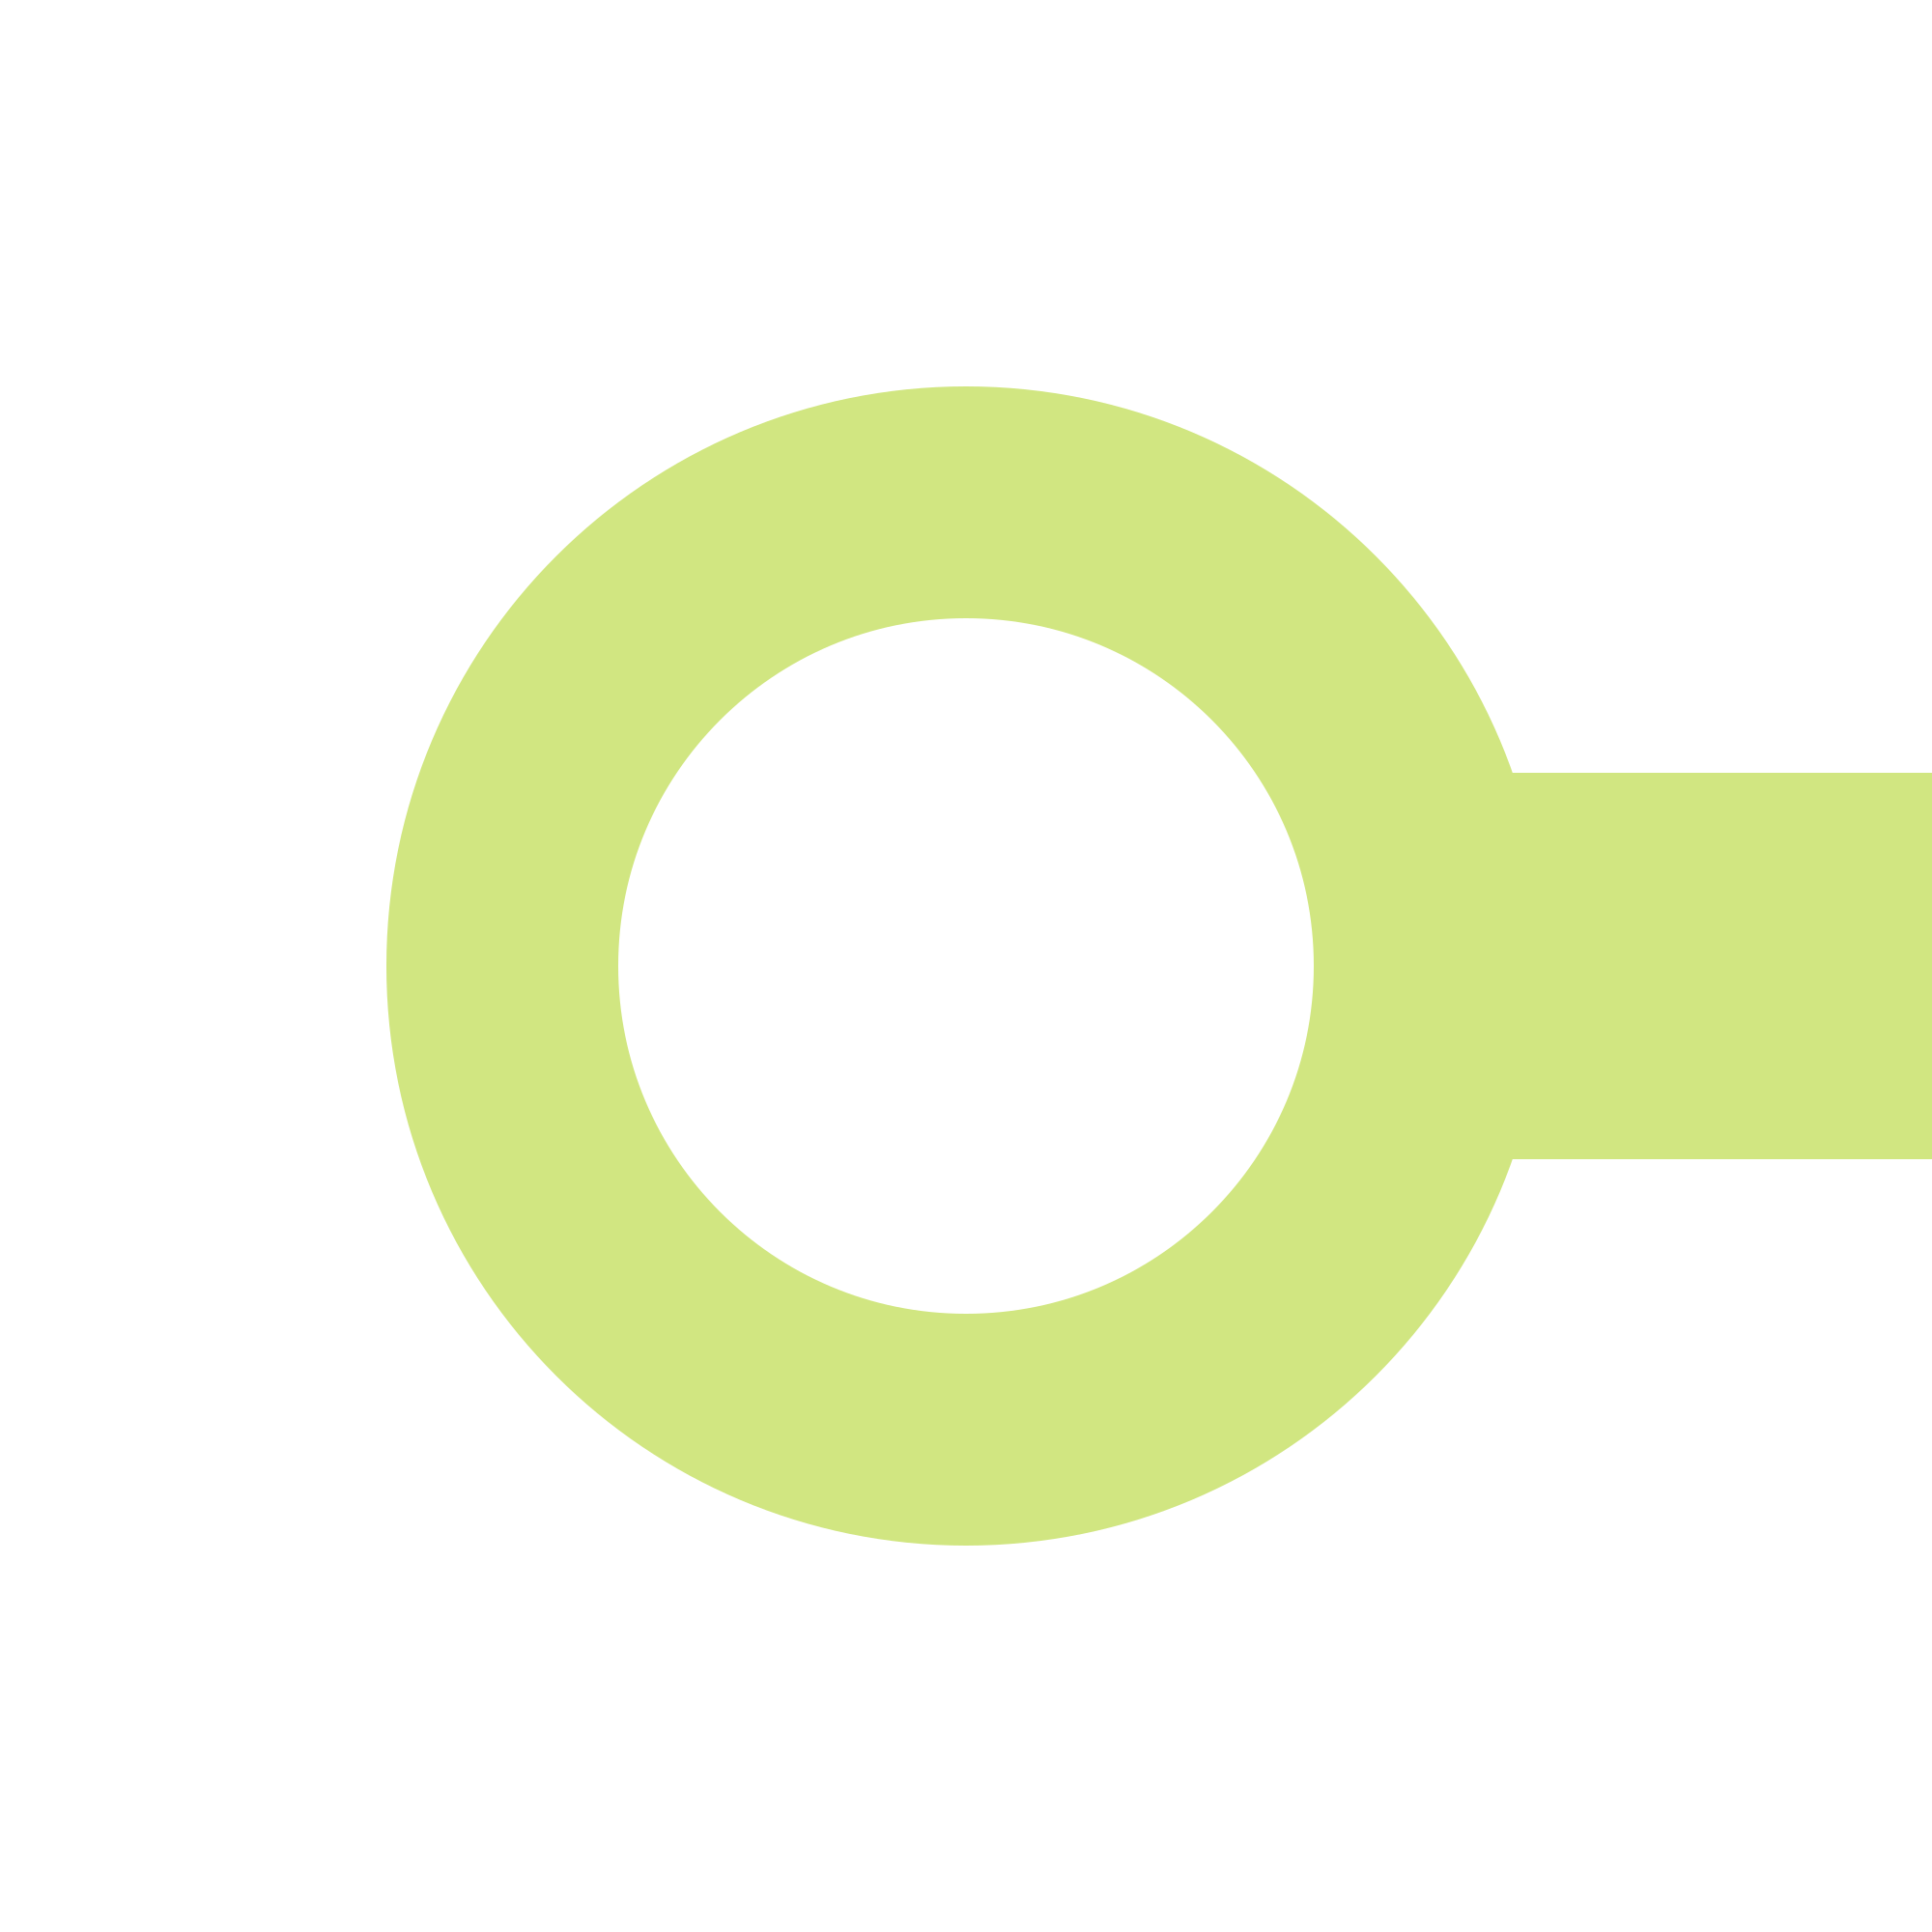 File bsicon exkdstaq wikimedia. Lime svg jpg freeuse